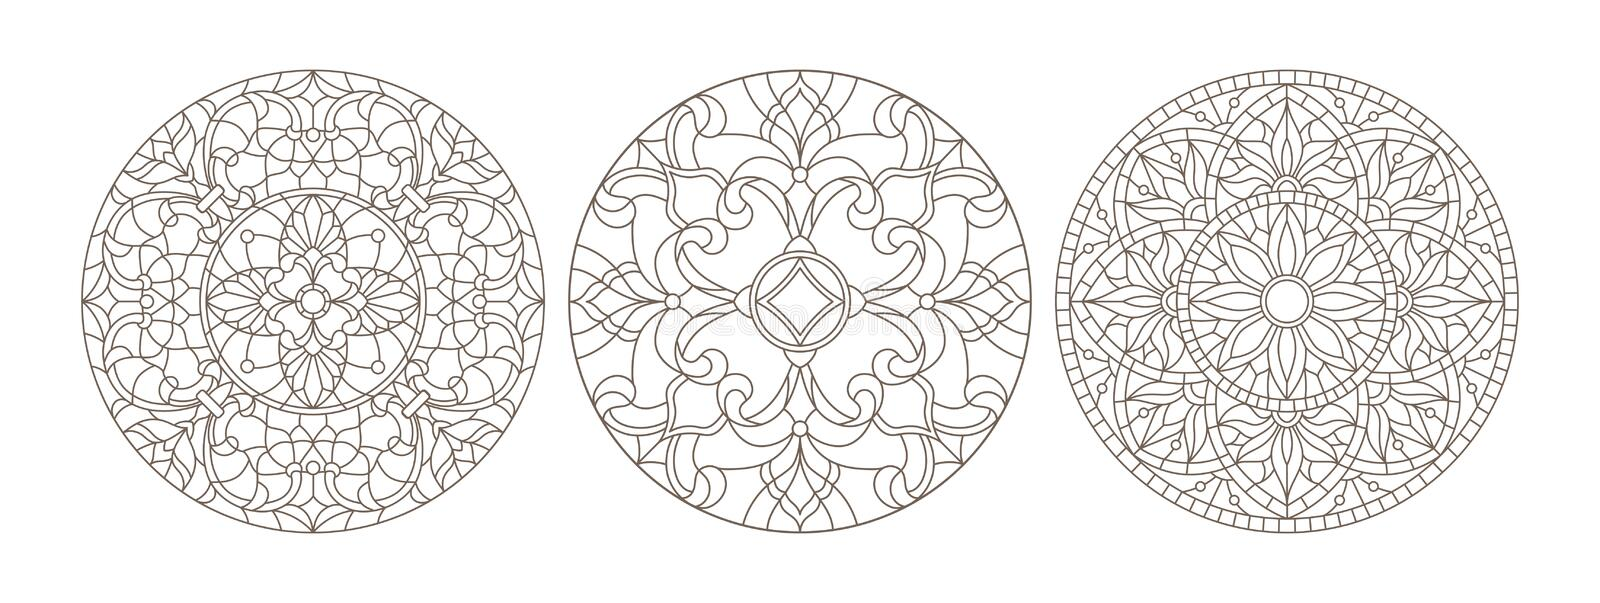 Contour set with illustrations of stained glass, round stained glass floral, dark outline on a white background royalty free illustration